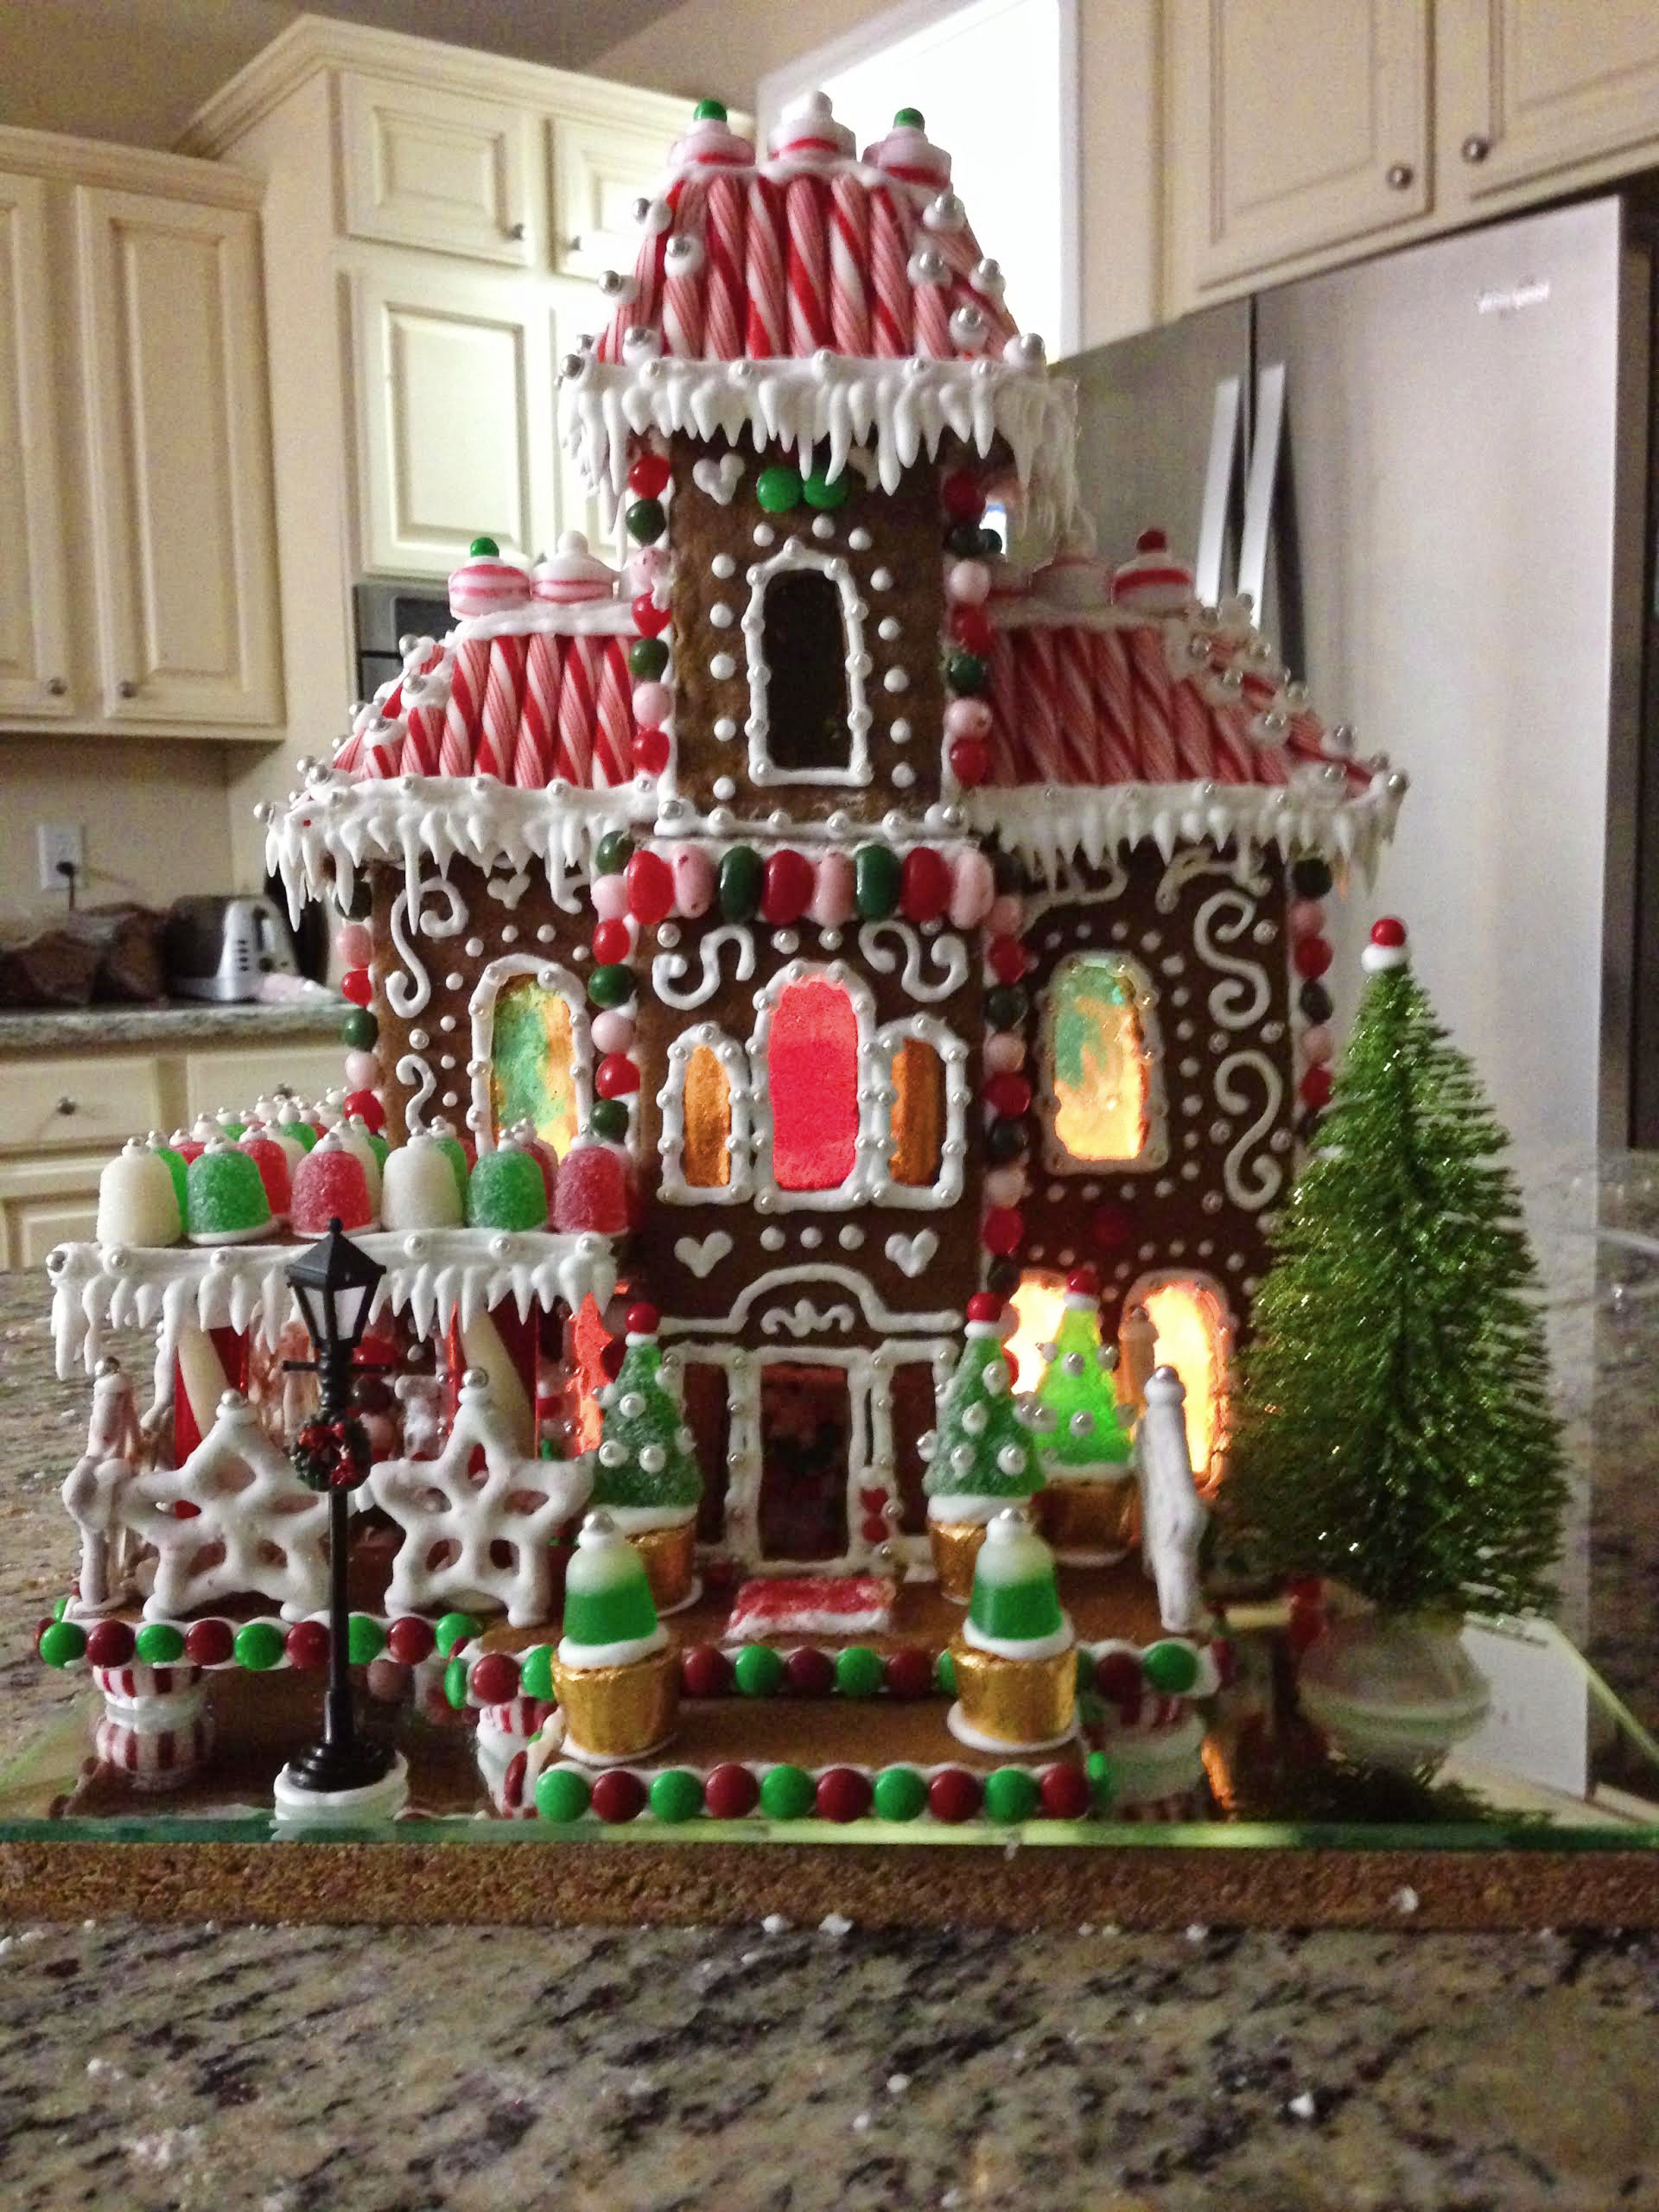 Premade Gingerbread Houses Remodelaholic Gingerbread Houses Tips Tricks Day 7